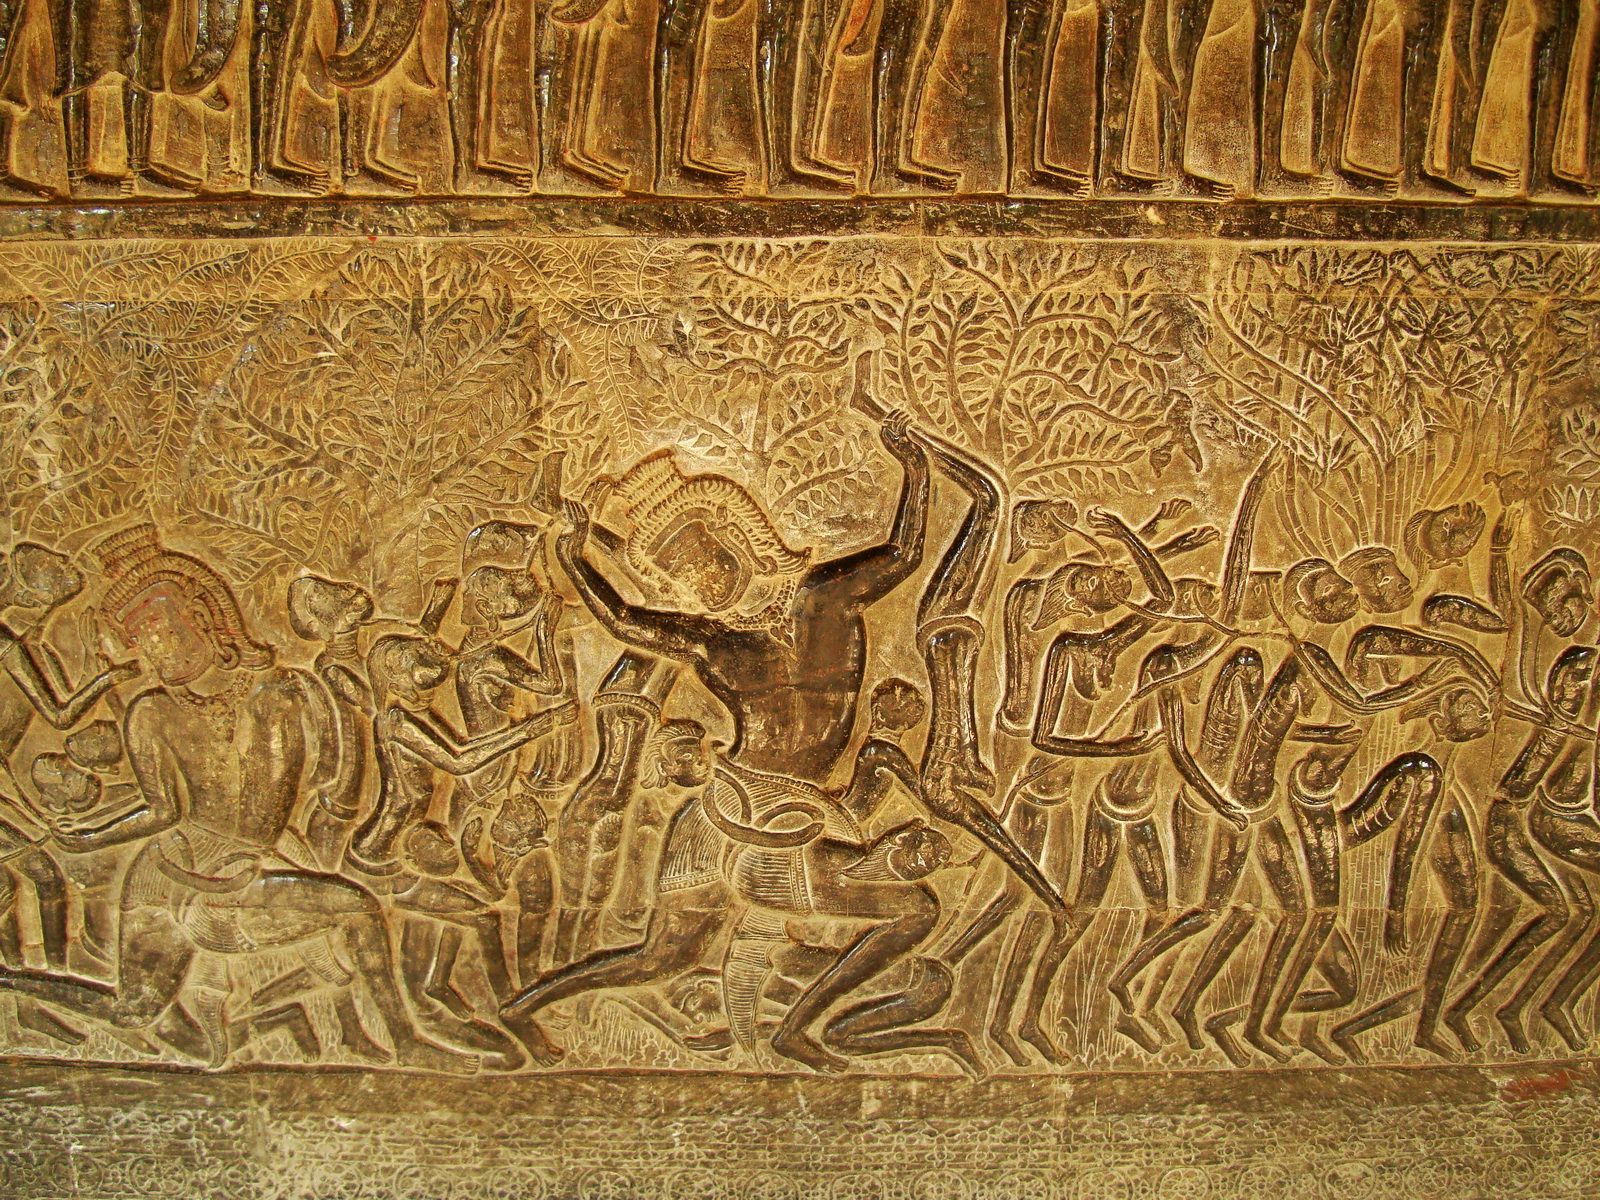 Angkor Wat Bas relief S Gallery E Wing Heavens and Hells 10